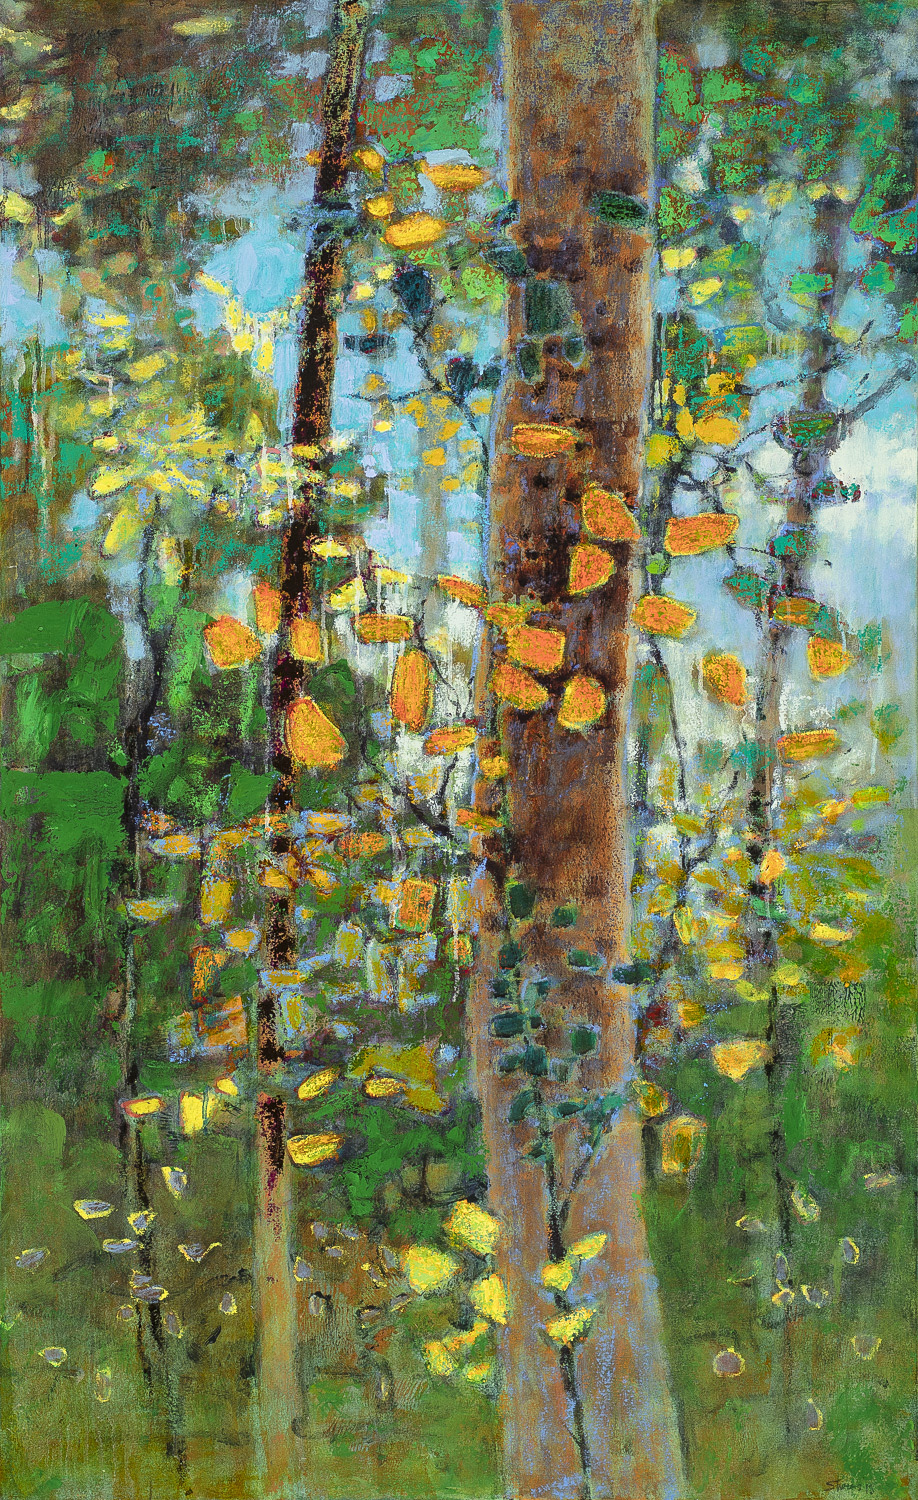 Moment of Gratitude  | oil on canvas | 52 x 32"